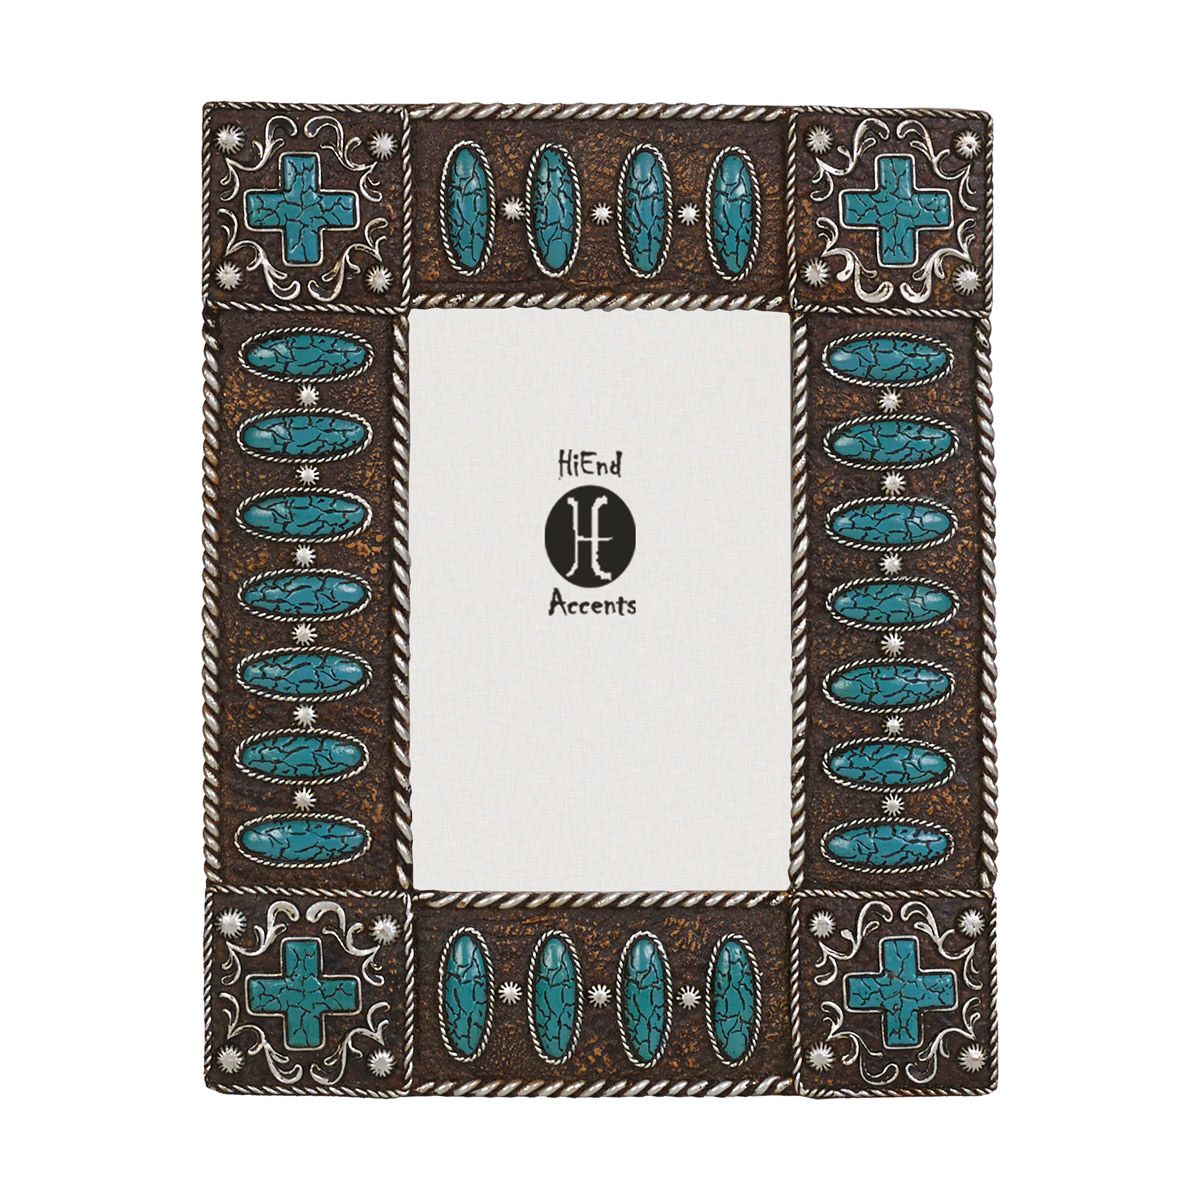 Crackled Turquoise Cross 4 x 6 Photo Frame